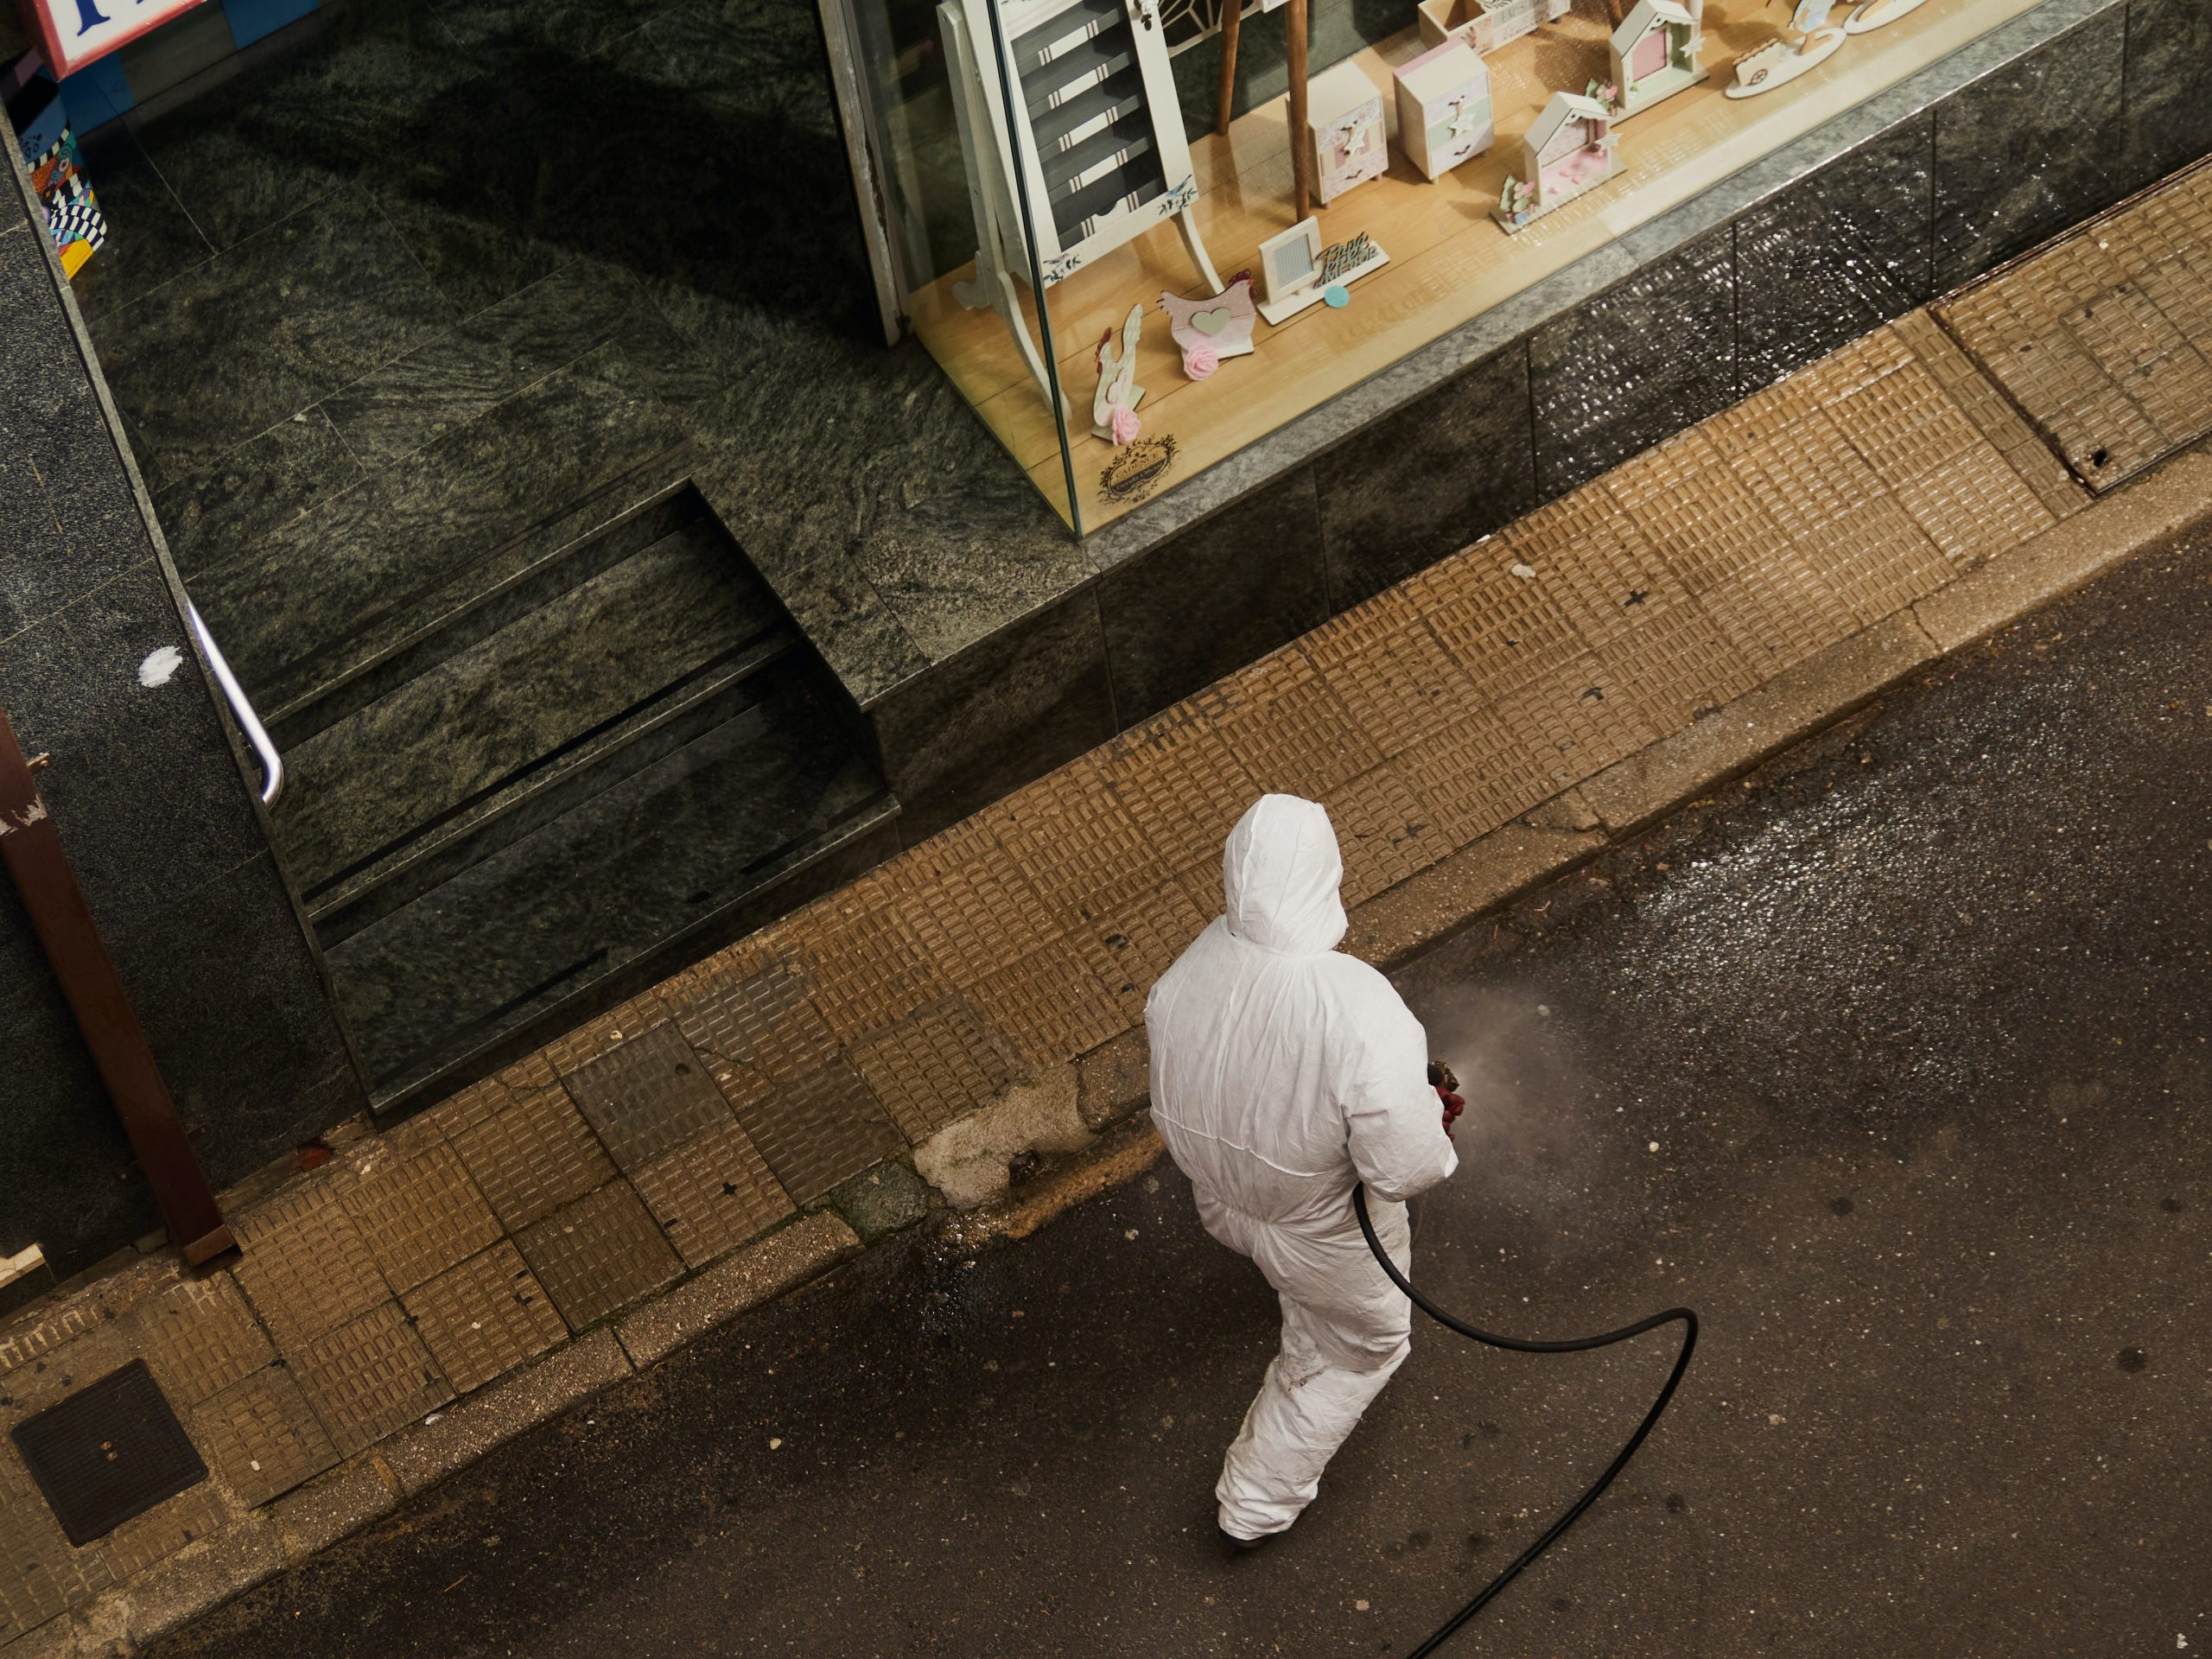 man in white thobe walking on sidewalk during daytime